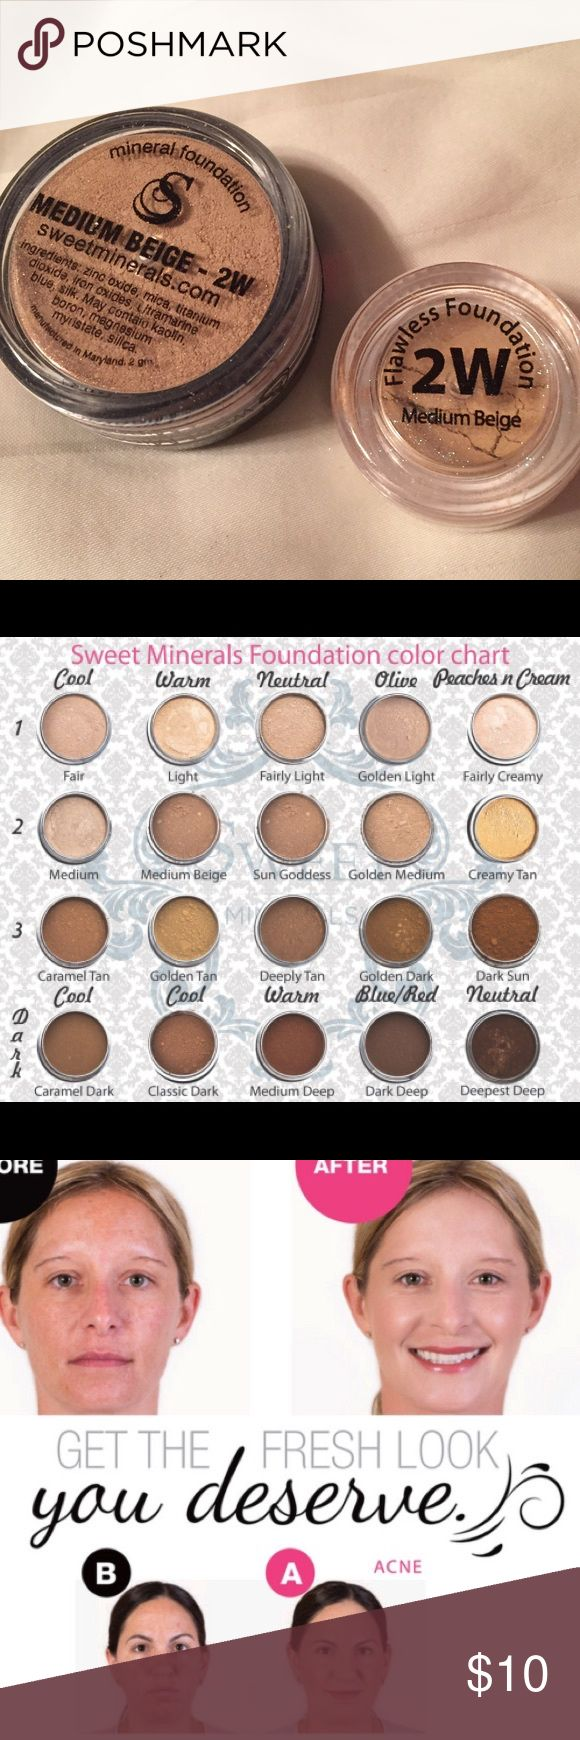 Flawless foundation! Medium complexion, warm tone Flawless foundation!! All natural, not cakey! No fillers like bismuth, talc, and also paraben-free. Cruelty free. Better than Bare Minerals (4 hour wear) and this lasts up 18 hours (or longer)! I've been using this brand for 3 years and I will never switch to anything else. It's never cakey and because there's no bismuth or talc, it's never itchy and it feels light as air. This has the best coverage you'll ever see without feeling heavy…